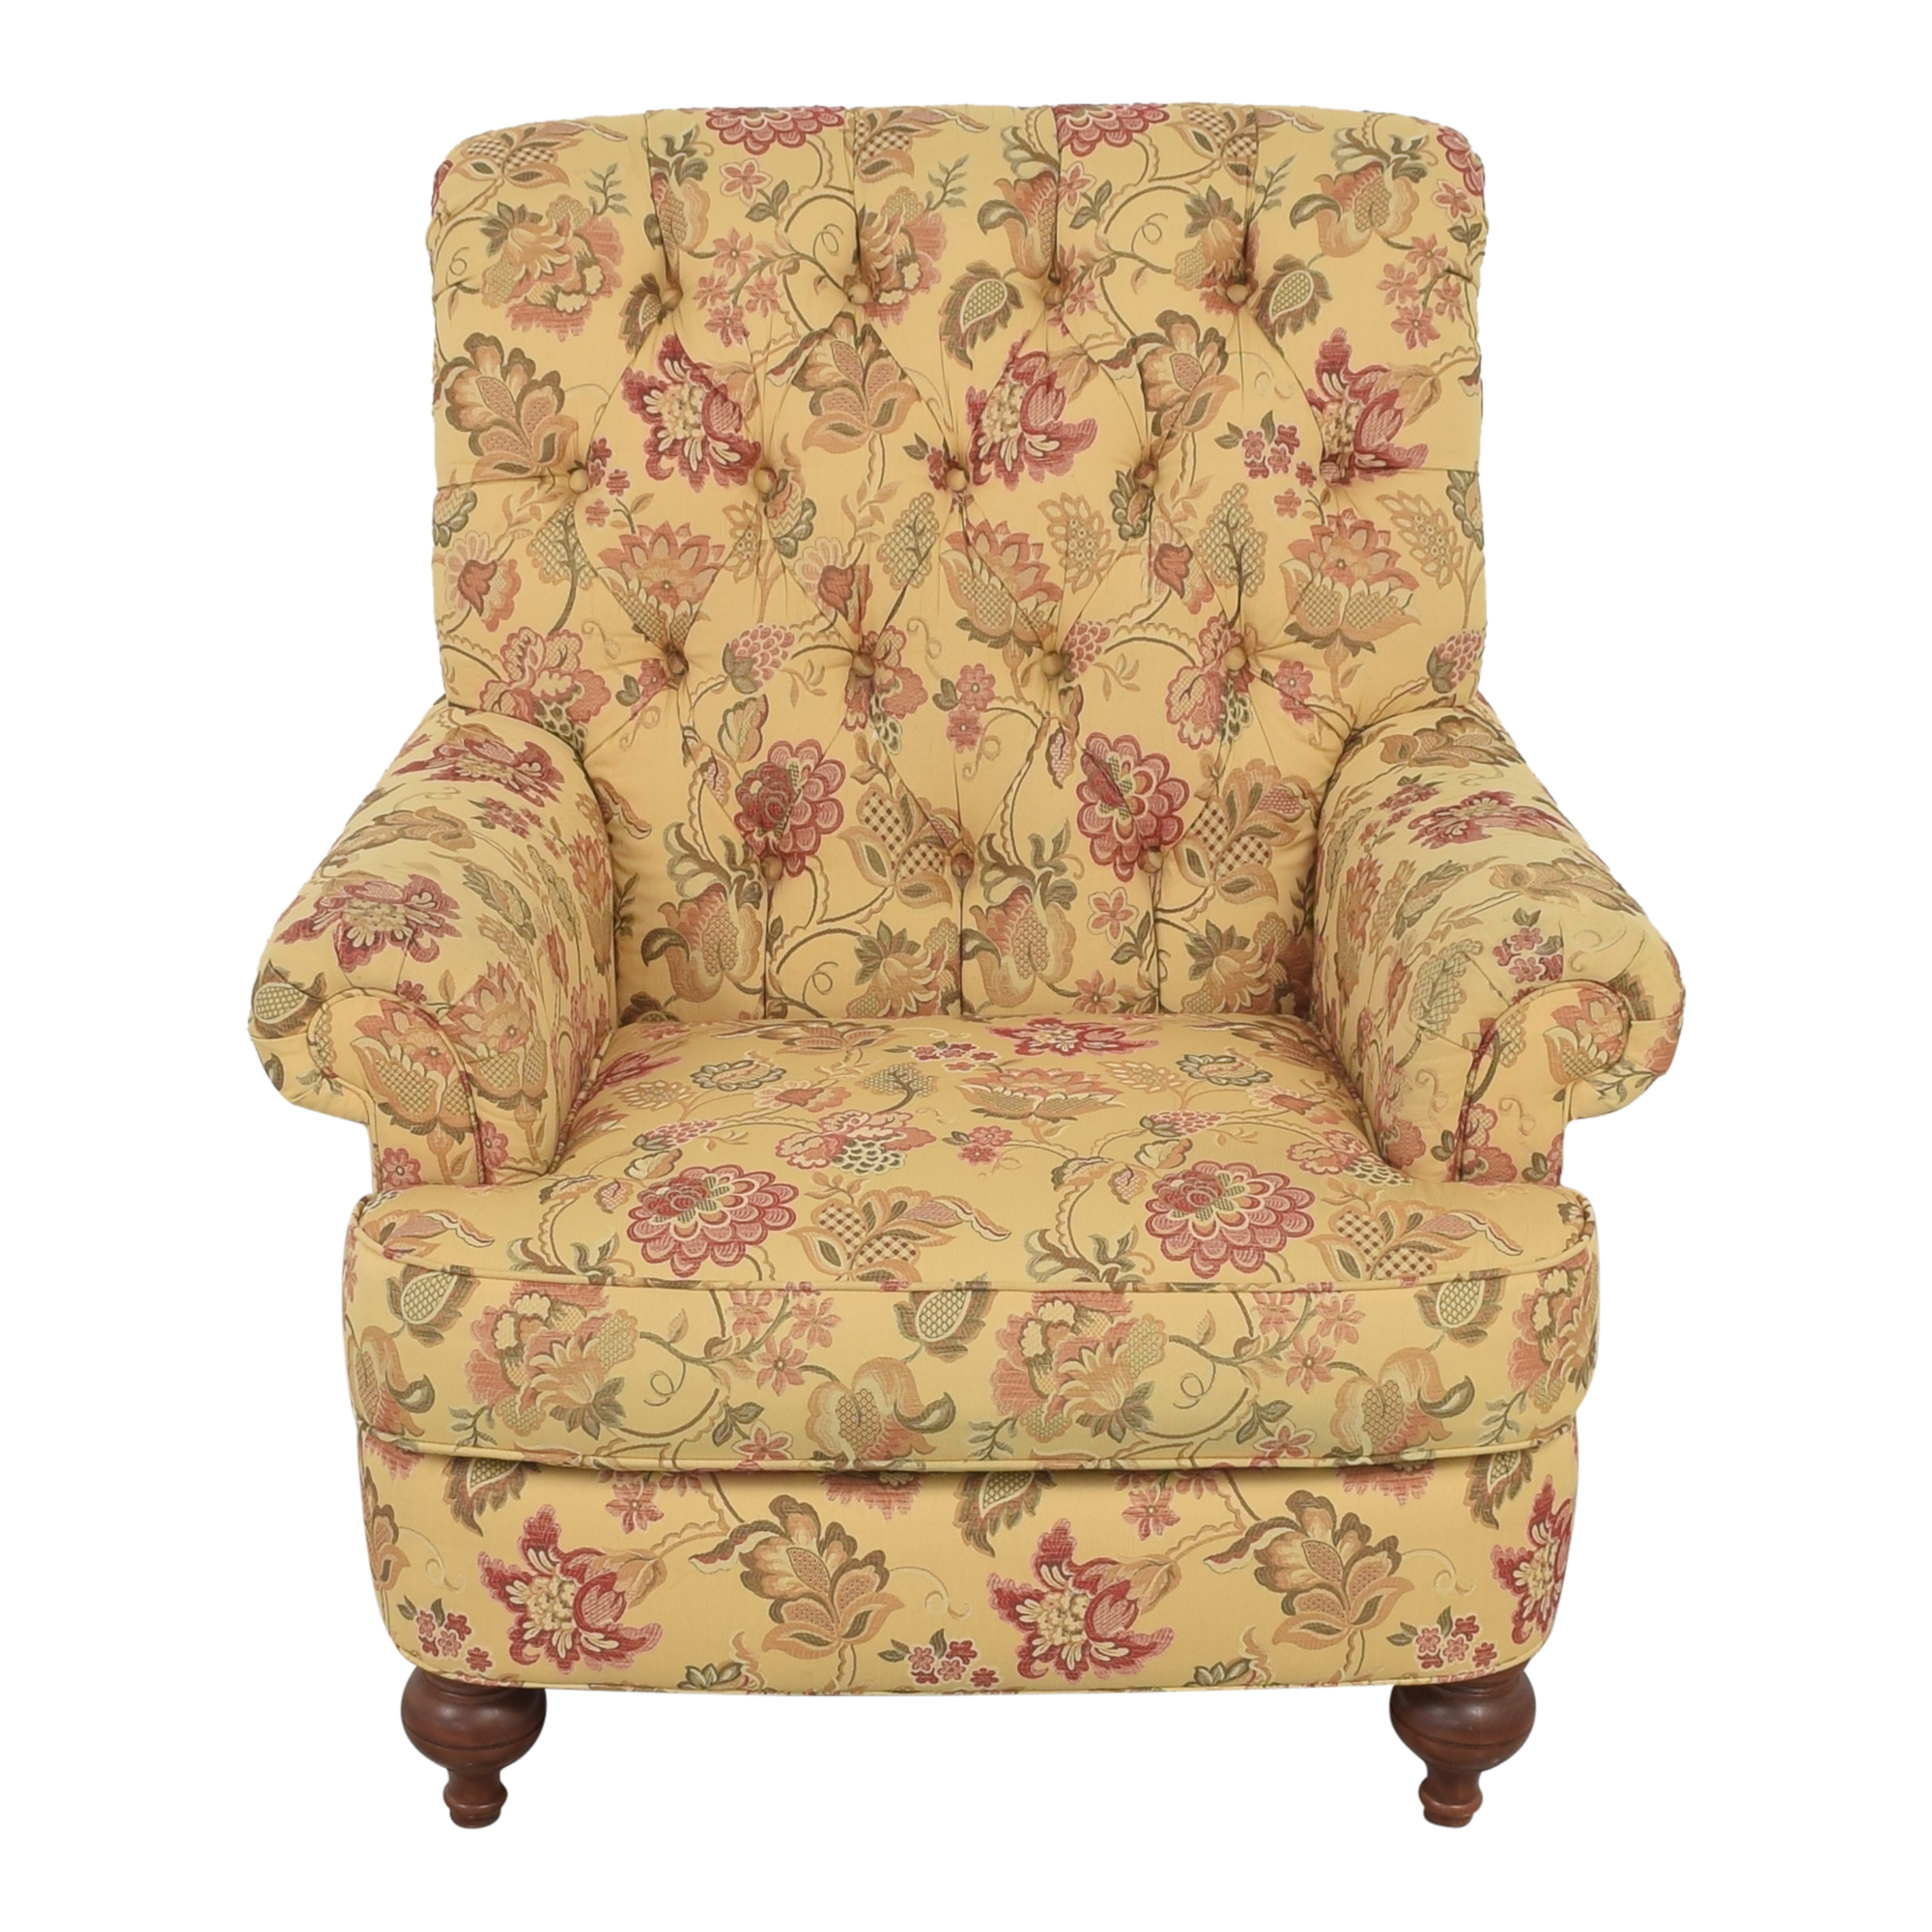 Ethan Allen Ethan Allen Shawe Chair Accent Chairs